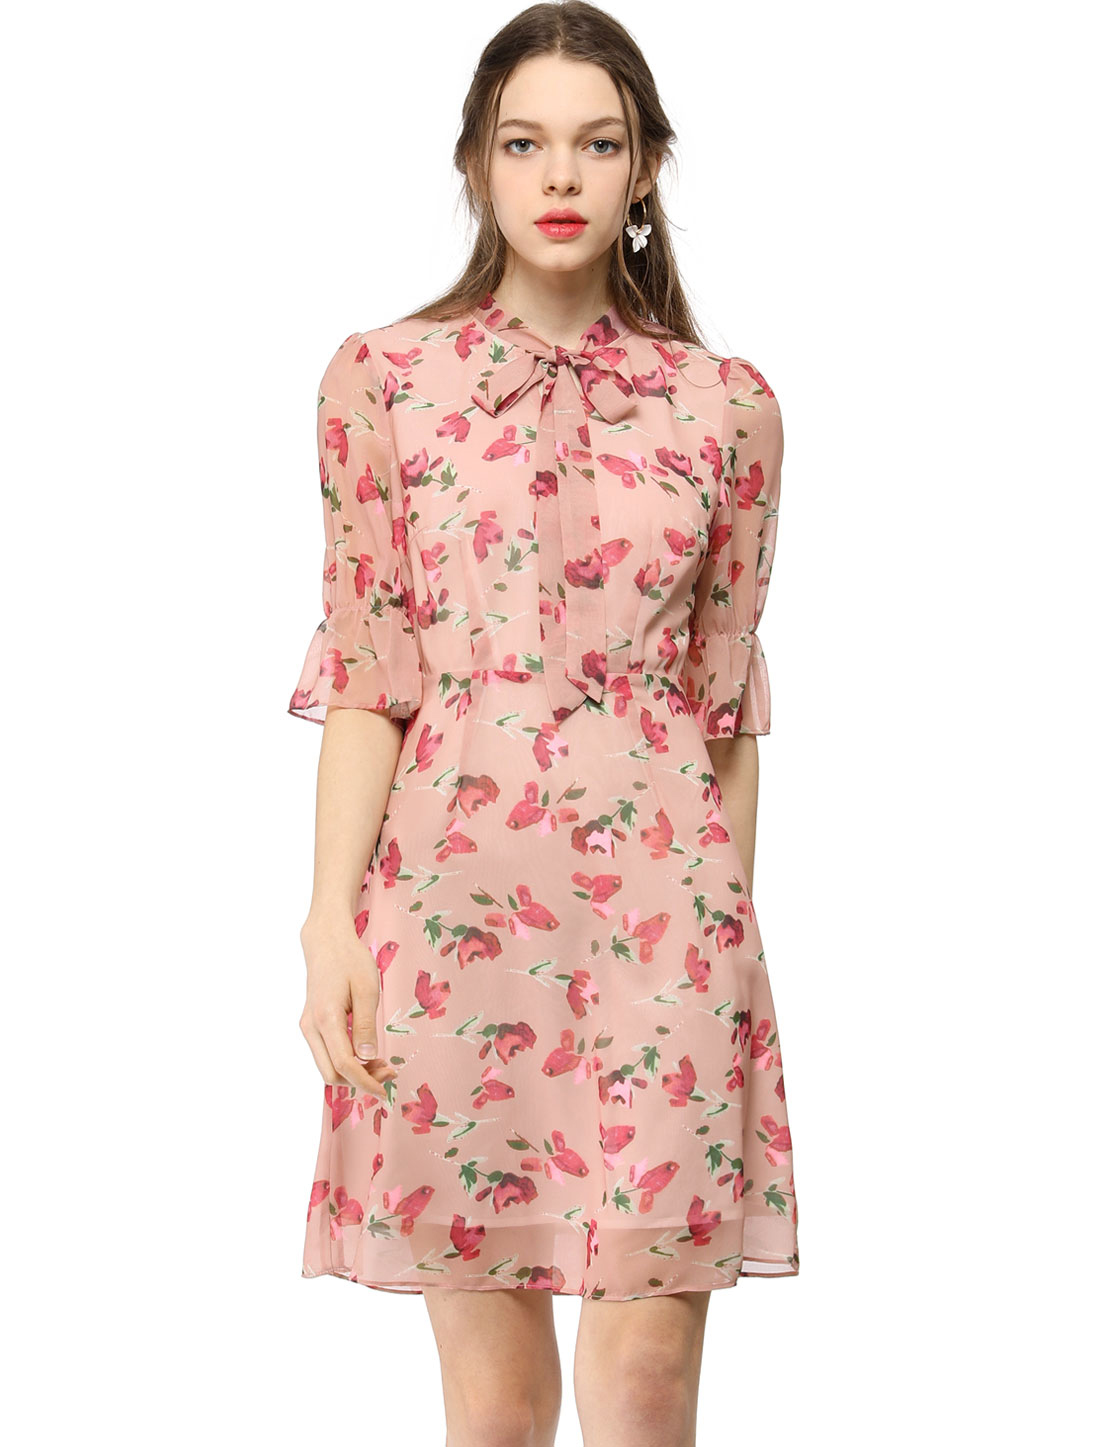 Allegra K Women's Chiffon Tie Neck Floral A-line Dress Pink XS (US 2)